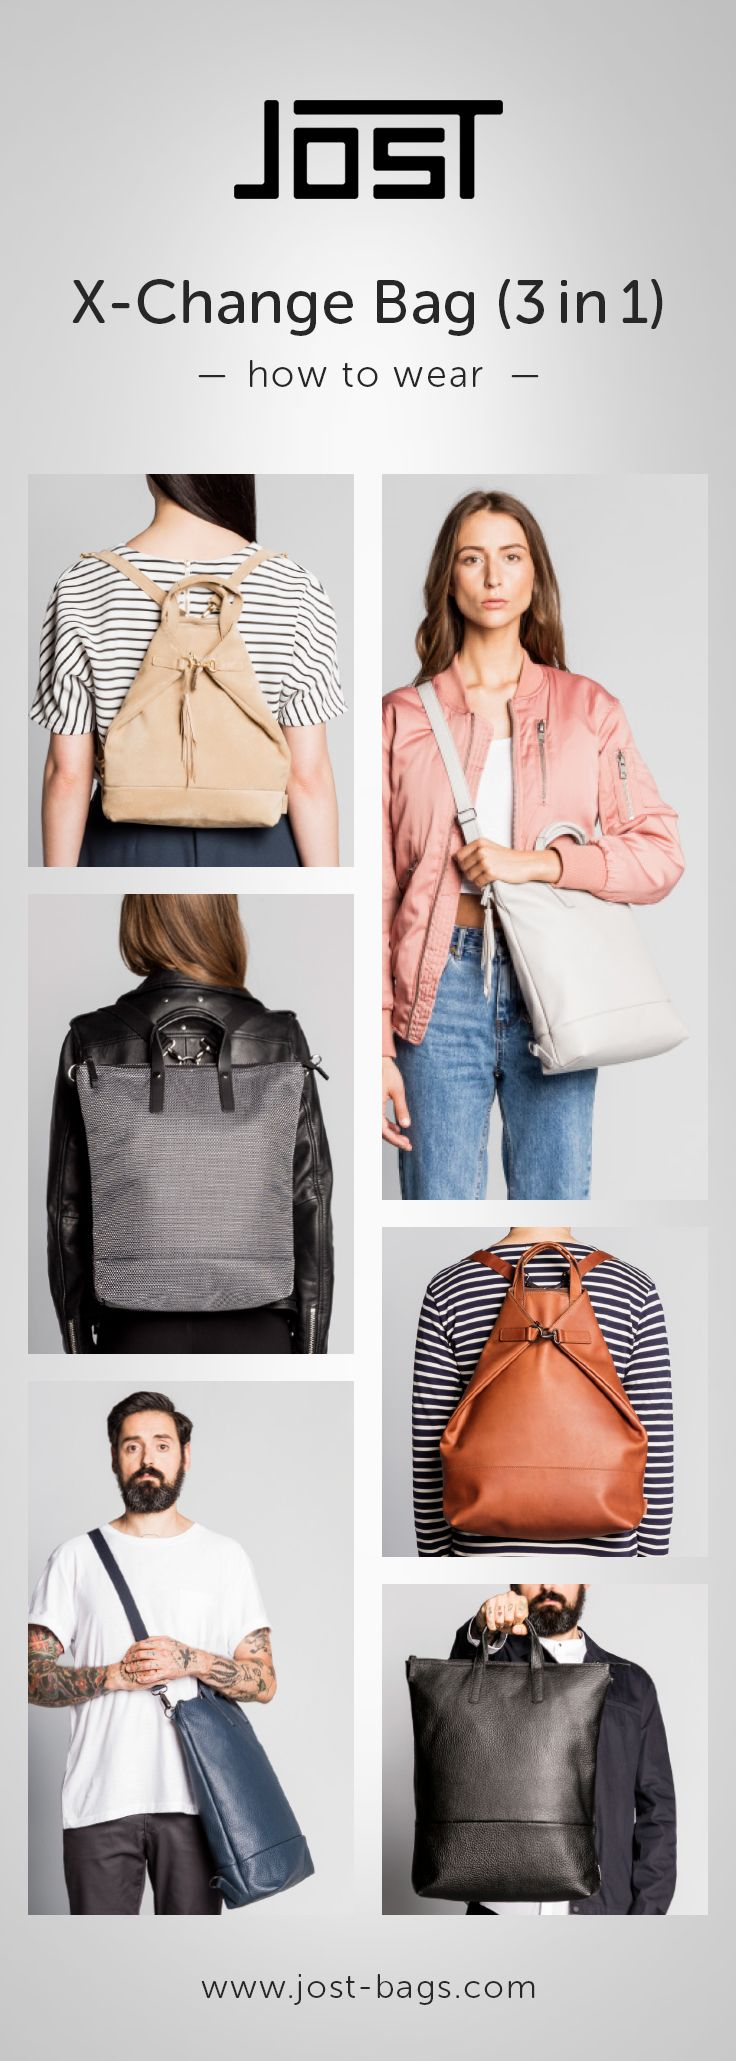 1 bag, 3 different ways to use it! You can either wear it as backpack, a shoulder bag or grab it briefcase style. You can also decide on whether to wear it open or together. Either way lots of room and options. Available for men and women! #bag #backpack #bags #shoulderbag #leatherbag #design #fashion #backpacker #leather #3in1 #jost #jostbags #howtowear #howtouse #howto